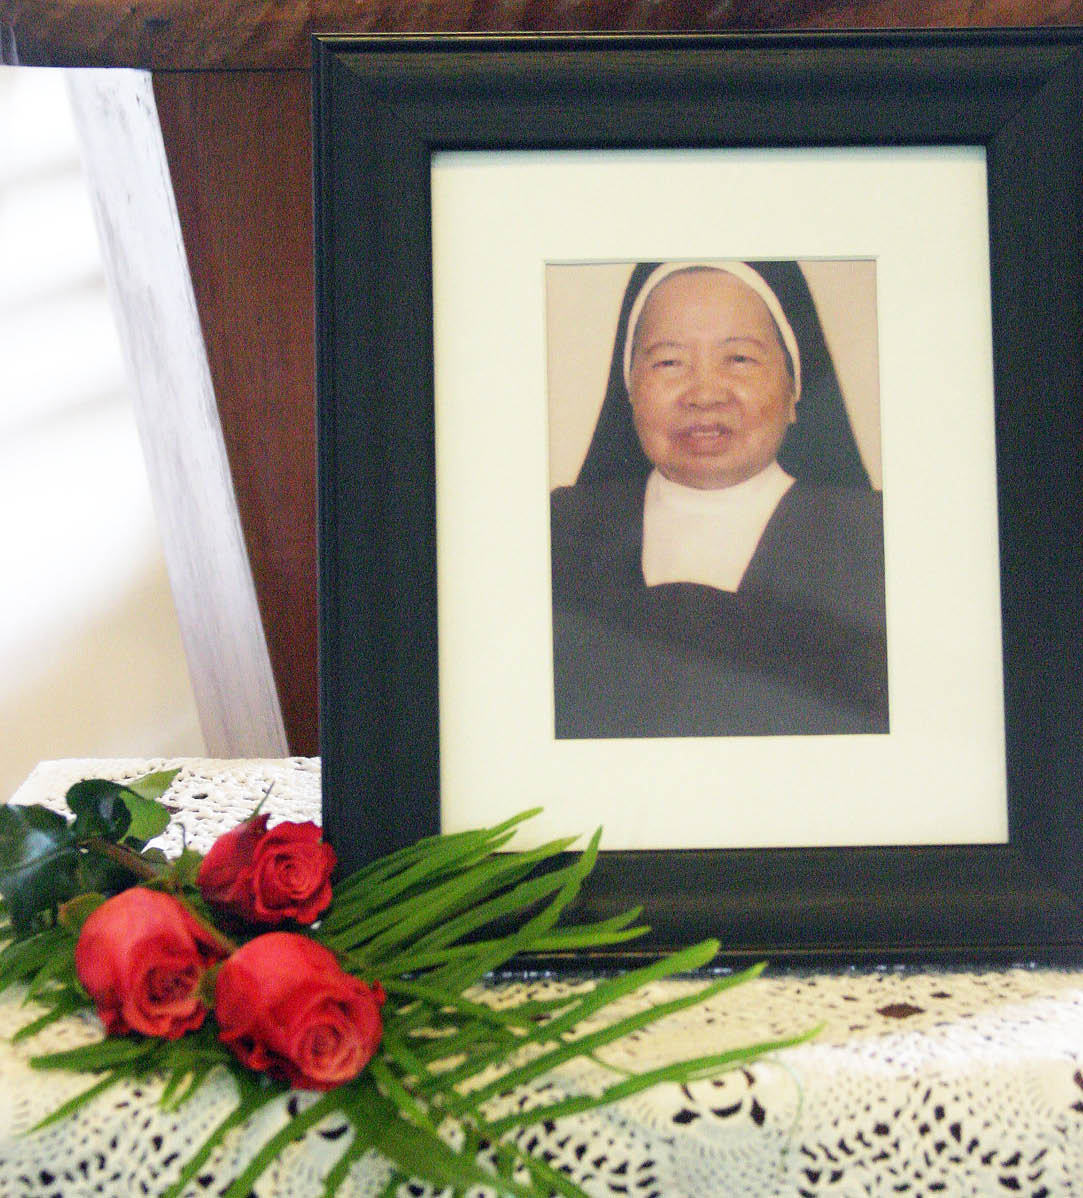 SISTER MARIE TANG OF THE CHILD JESUS | 1924-2018 - Hawaii Catholic